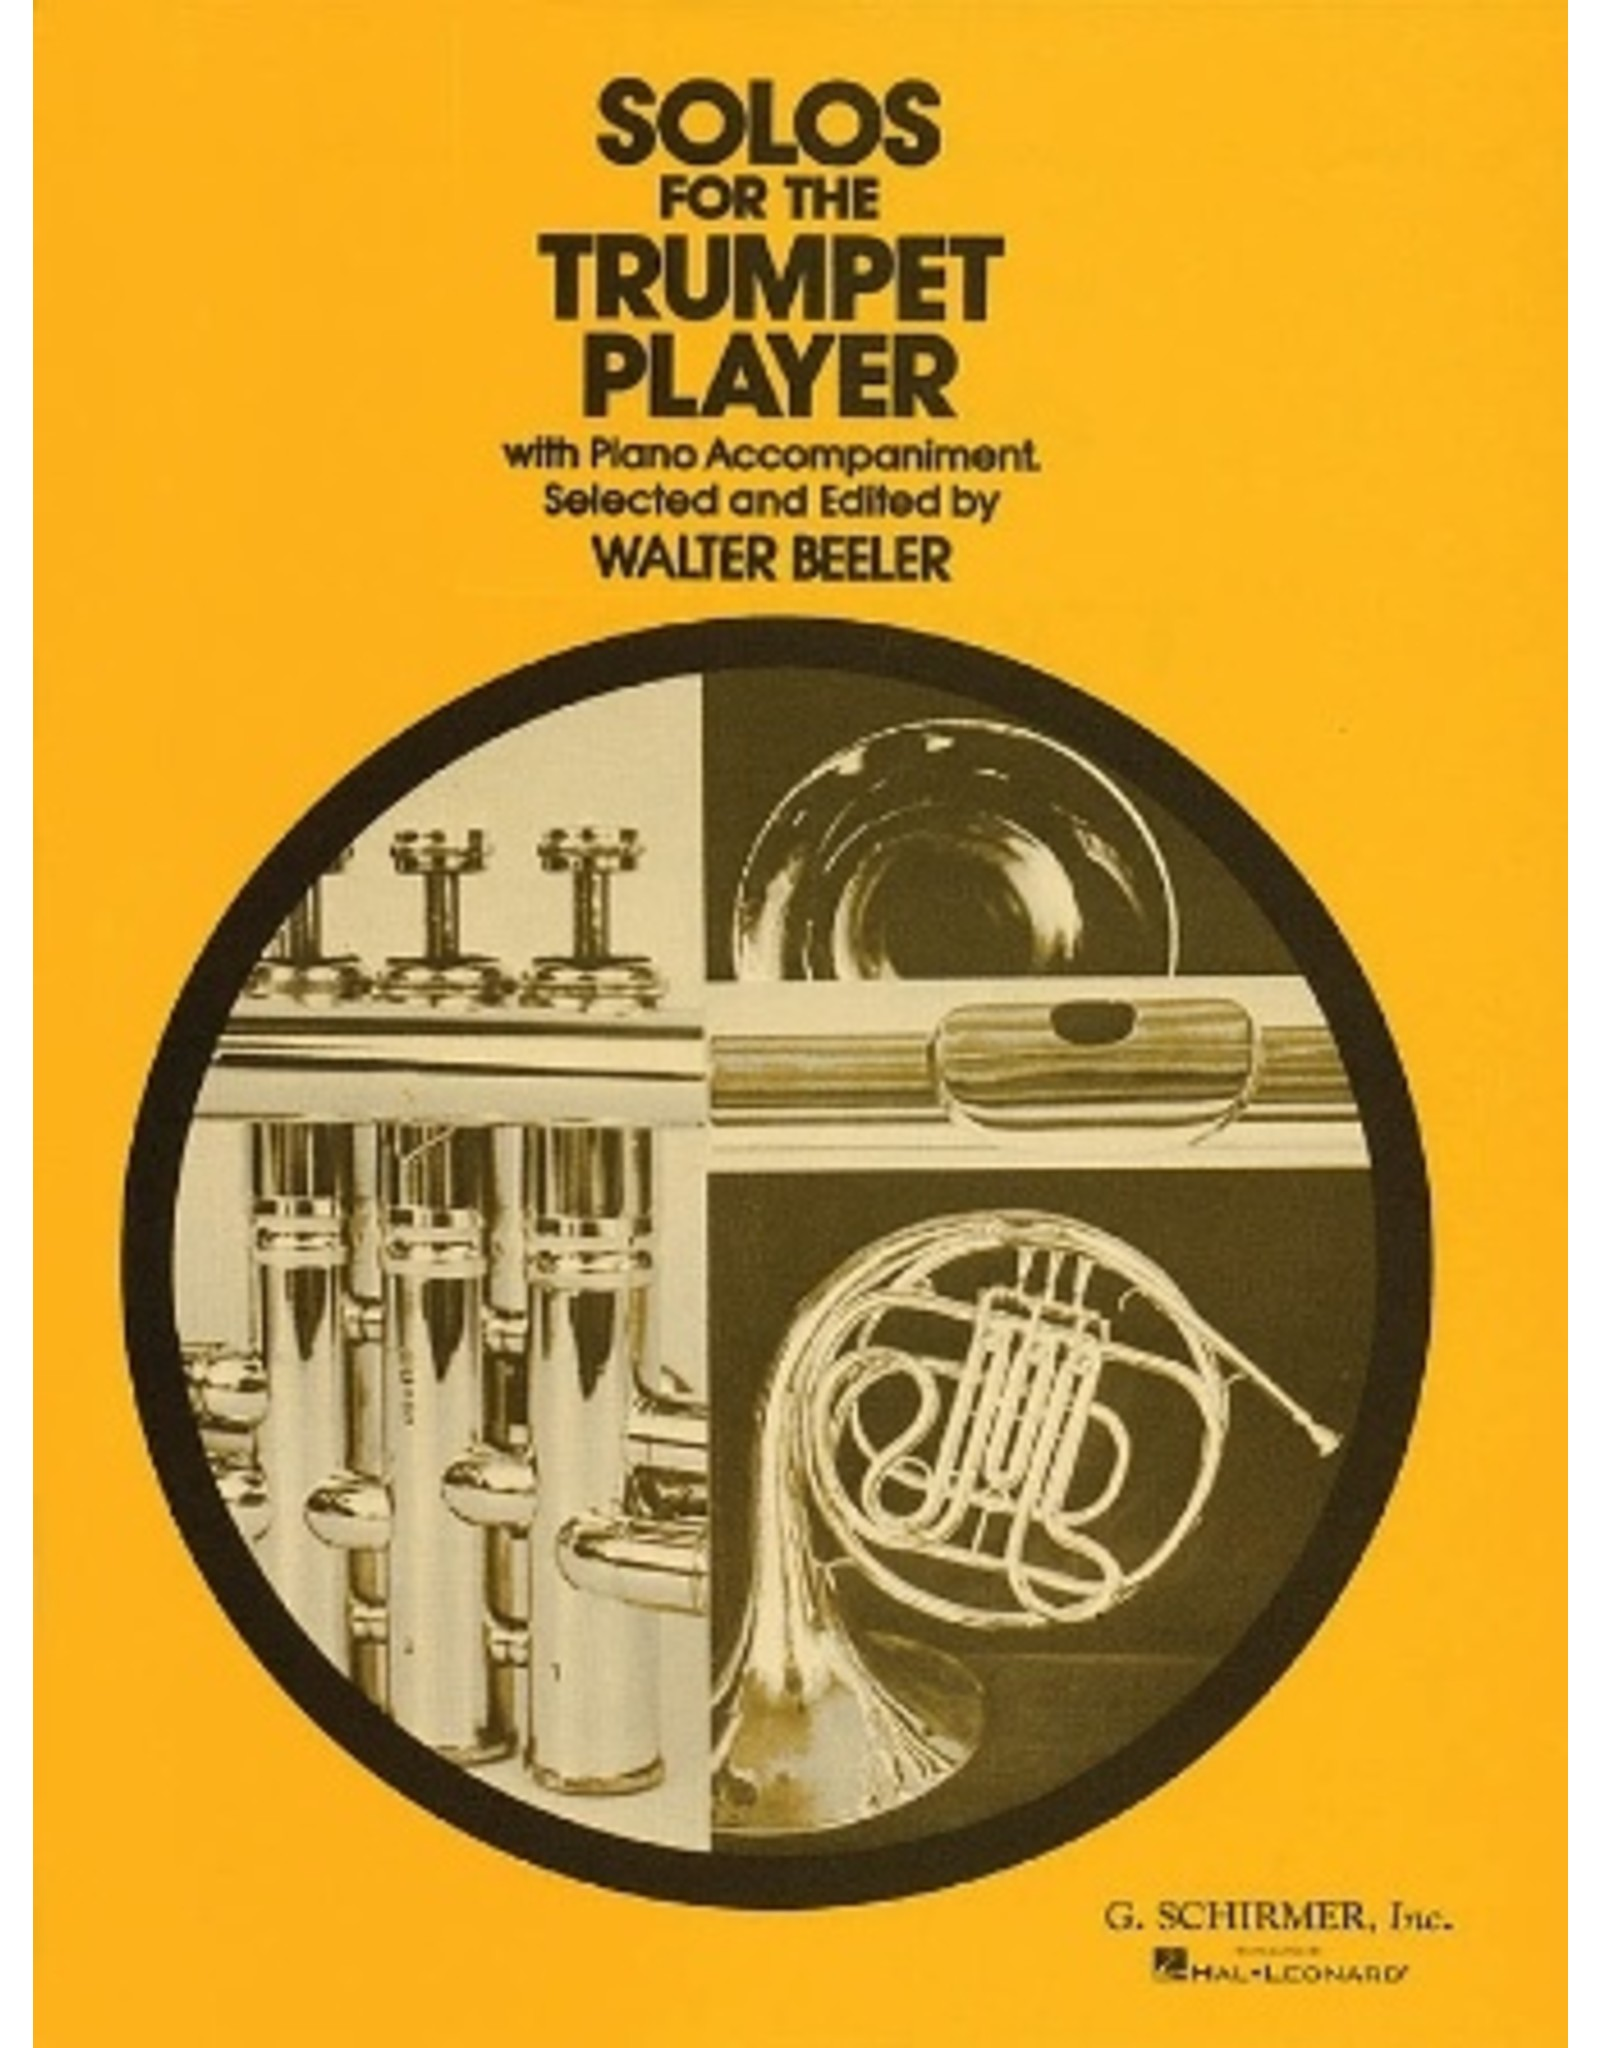 Hal Leonard Solos for the Trumpet Player Trumpet and Piano ed. Walter Beeler Brass Solo